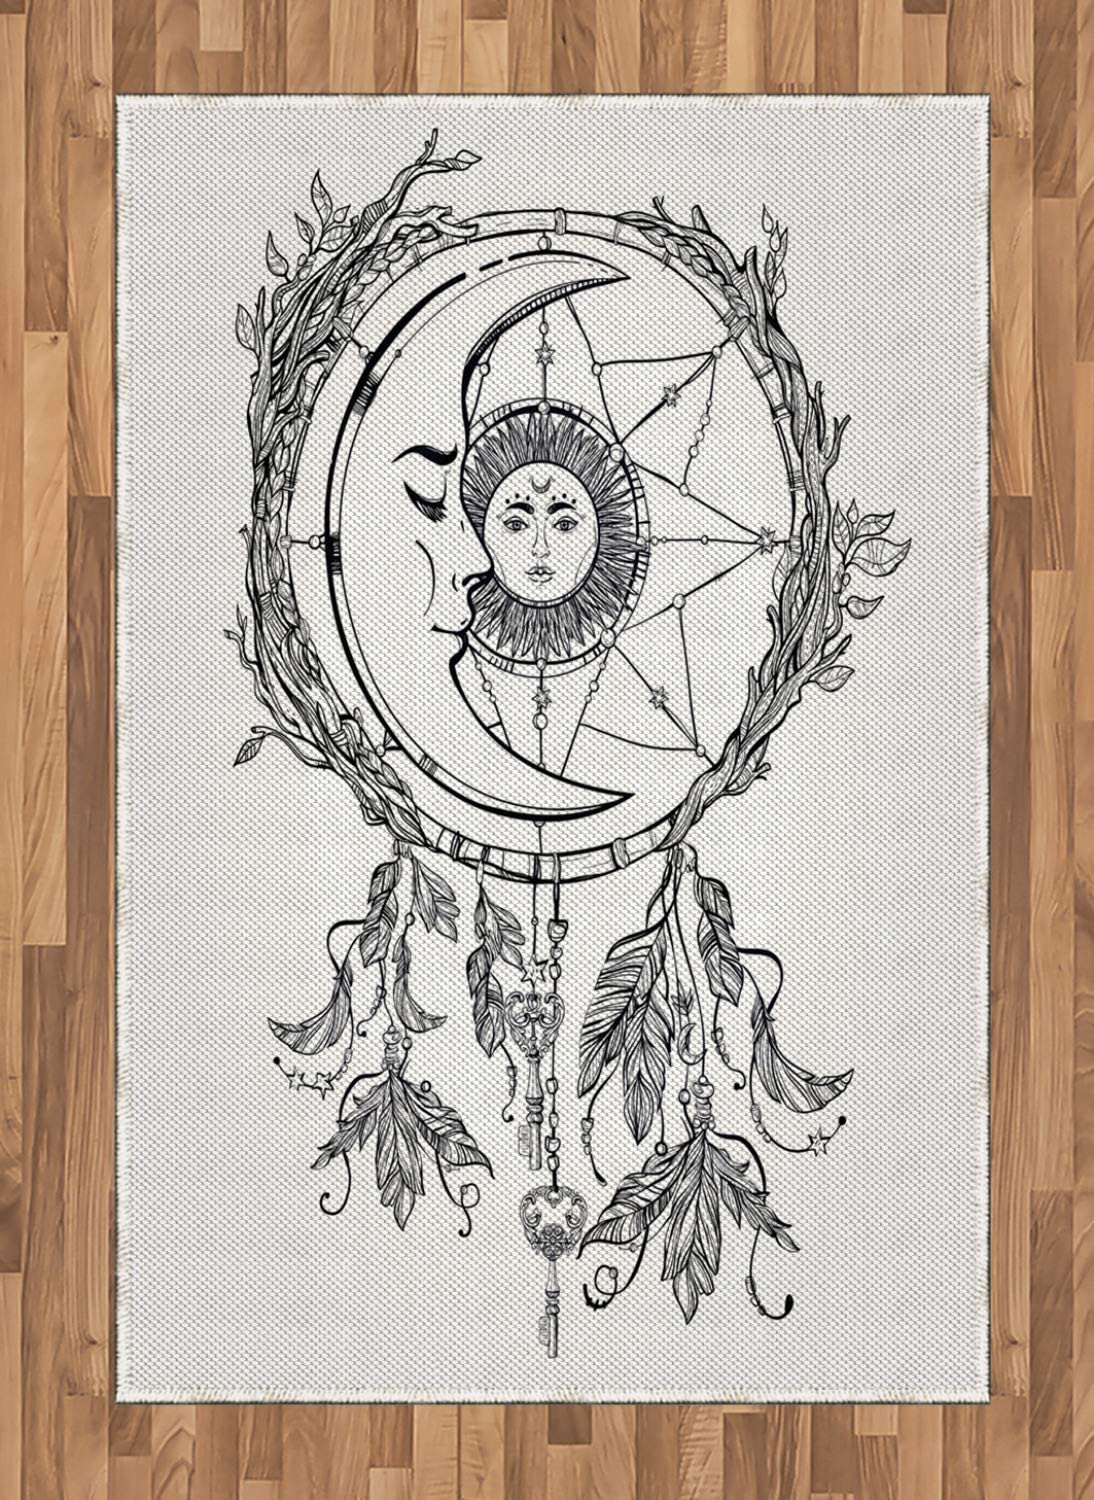 Ambesonne Mystic Area Rug, Dreamcatcher Feathers with Sun and Moon Inside Cosmos Image, Flat Woven Accent Rug for Living Room Bedroom Dining Room, 4' X 5.7', Black White